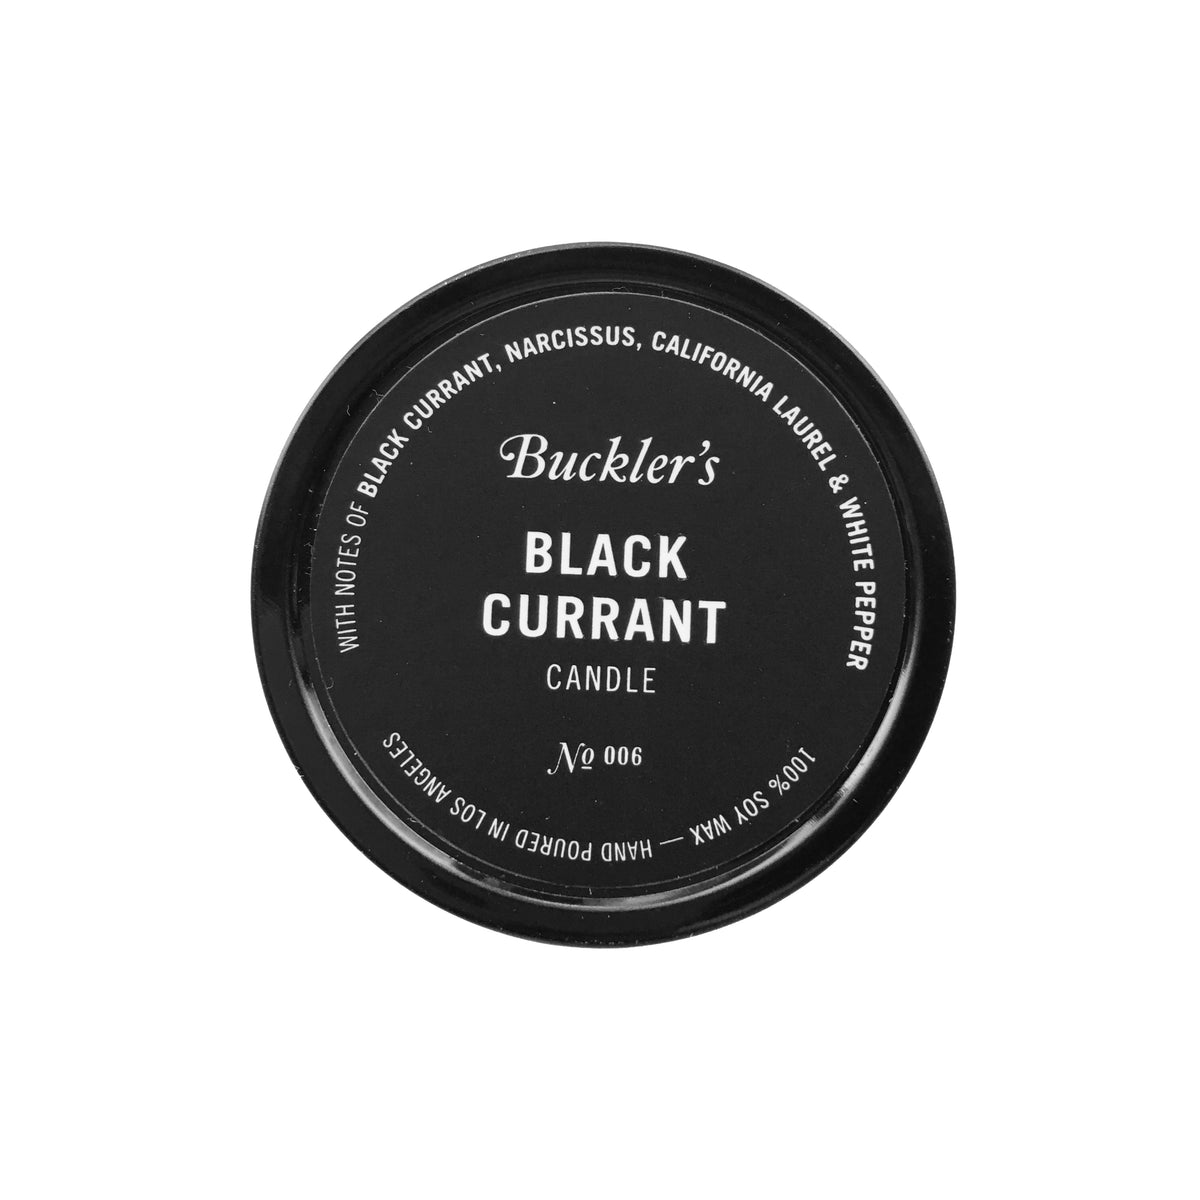 Buckler's Black Currant Candle